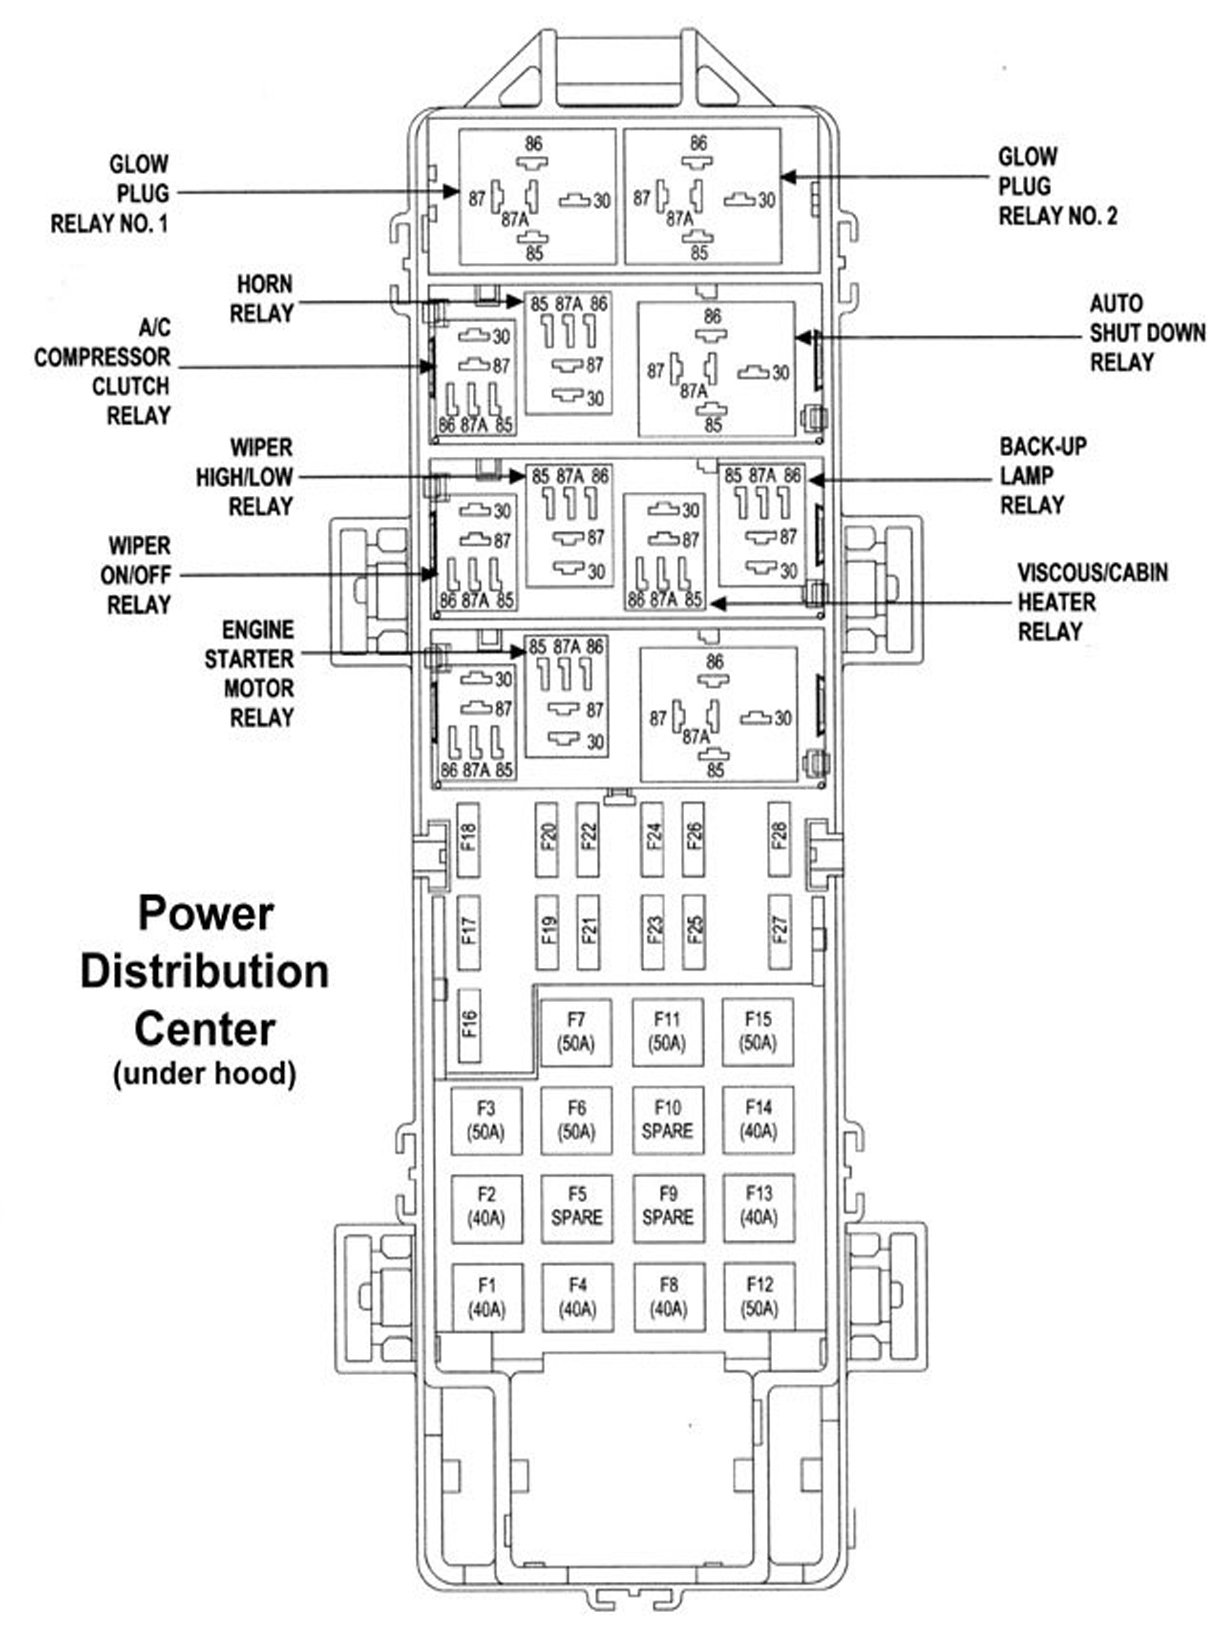 99 jeep grand cherokee laredo wiring diagram dorman 4 pin relay wj 1999 to 2004 fuse box